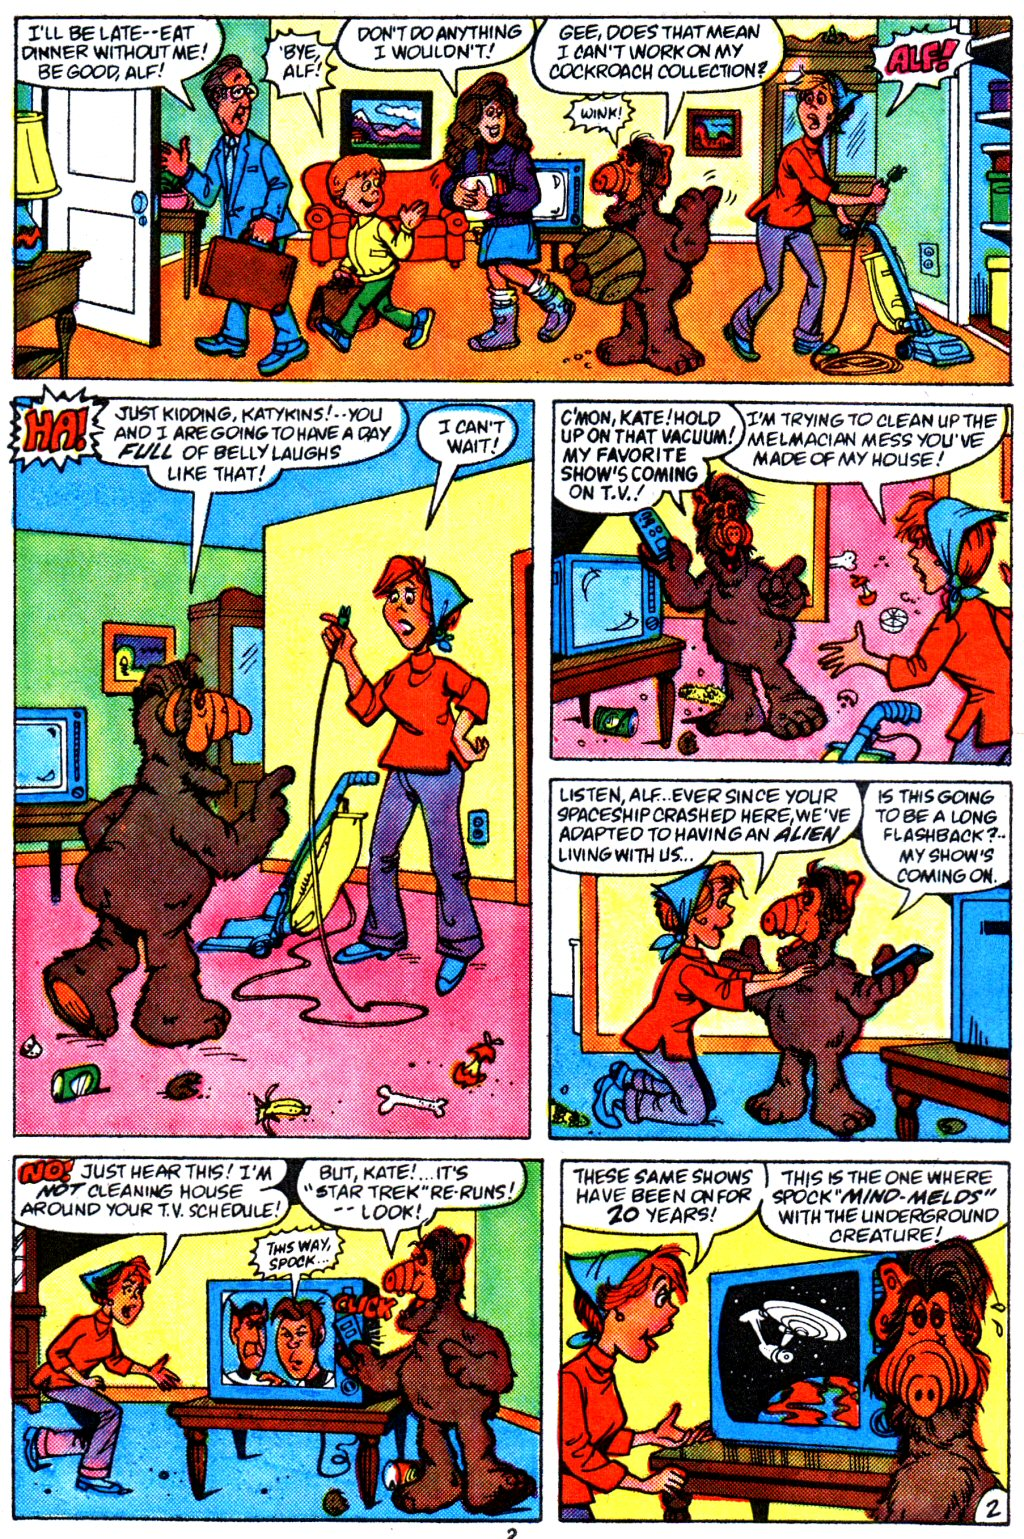 Read online ALF comic -  Issue #4 - 3